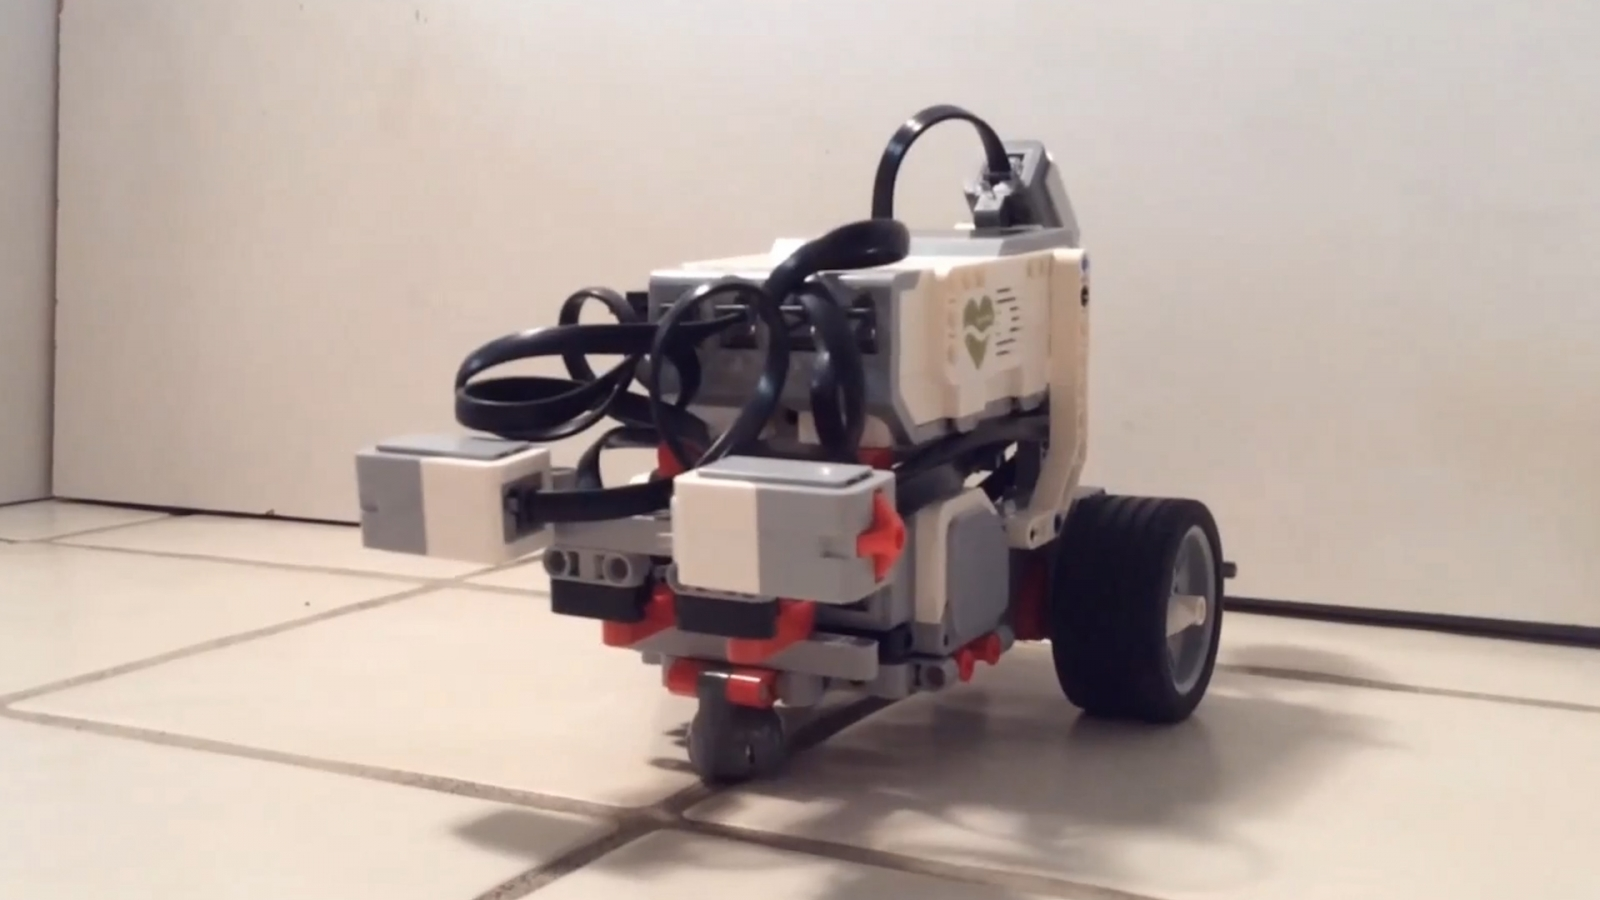 LEGO robot controlled by the brain of a worm developed by OpenWorm project